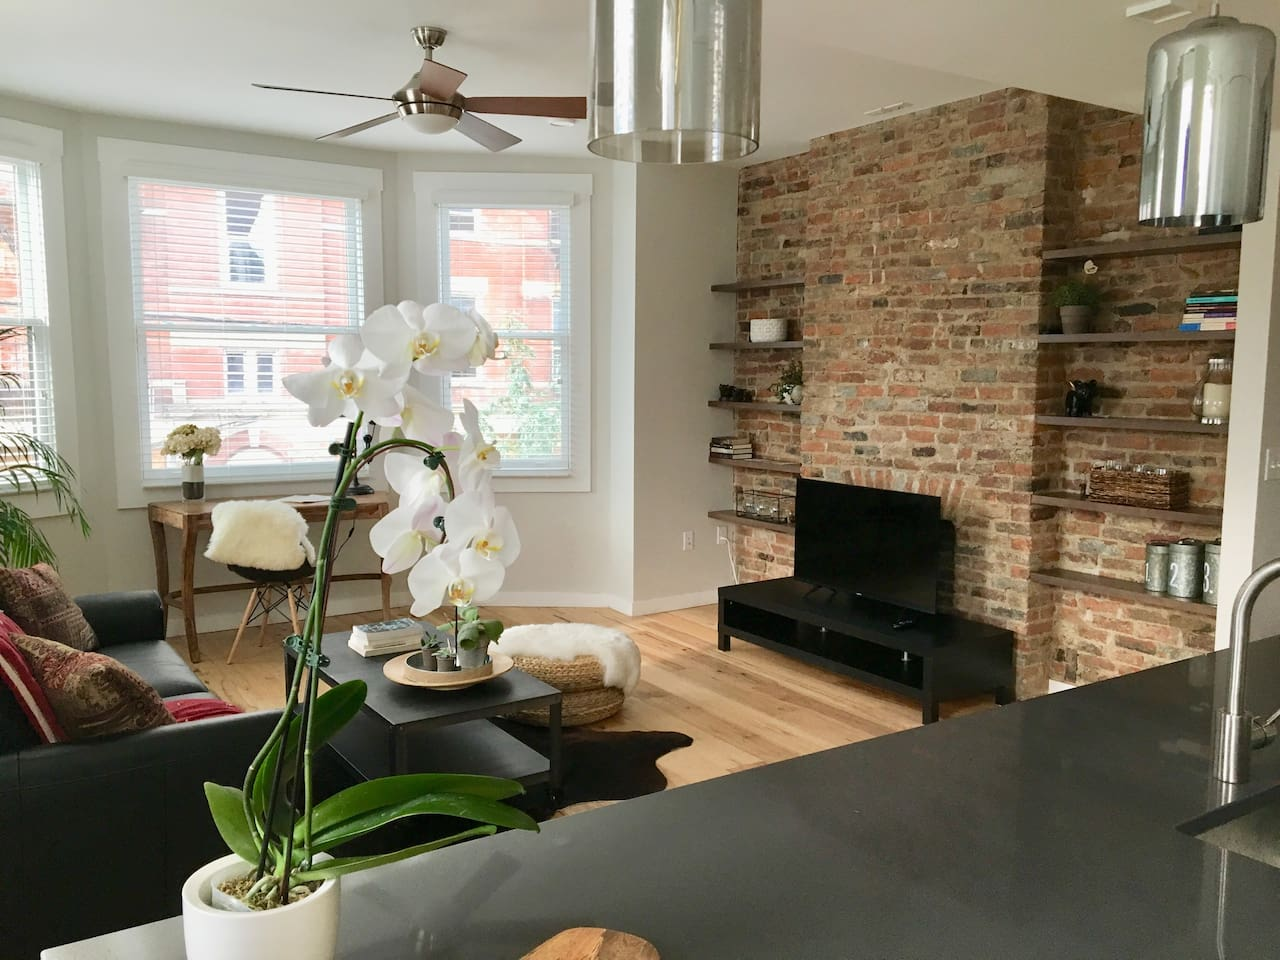 Newly Renovated Apt in Central OTR, Parking Pass!